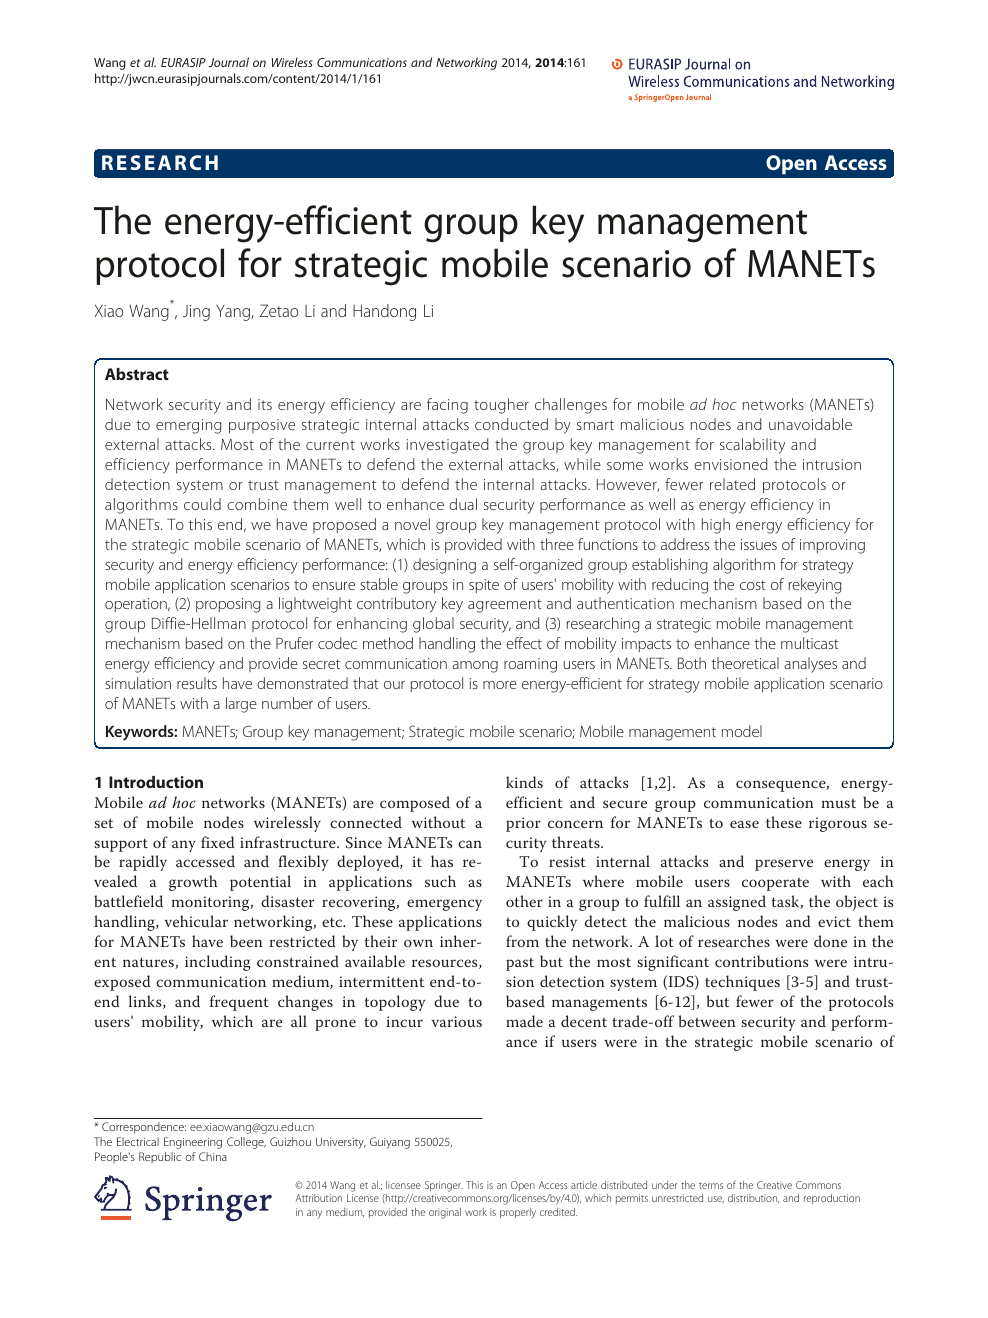 The energy-efficient group key management protocol for